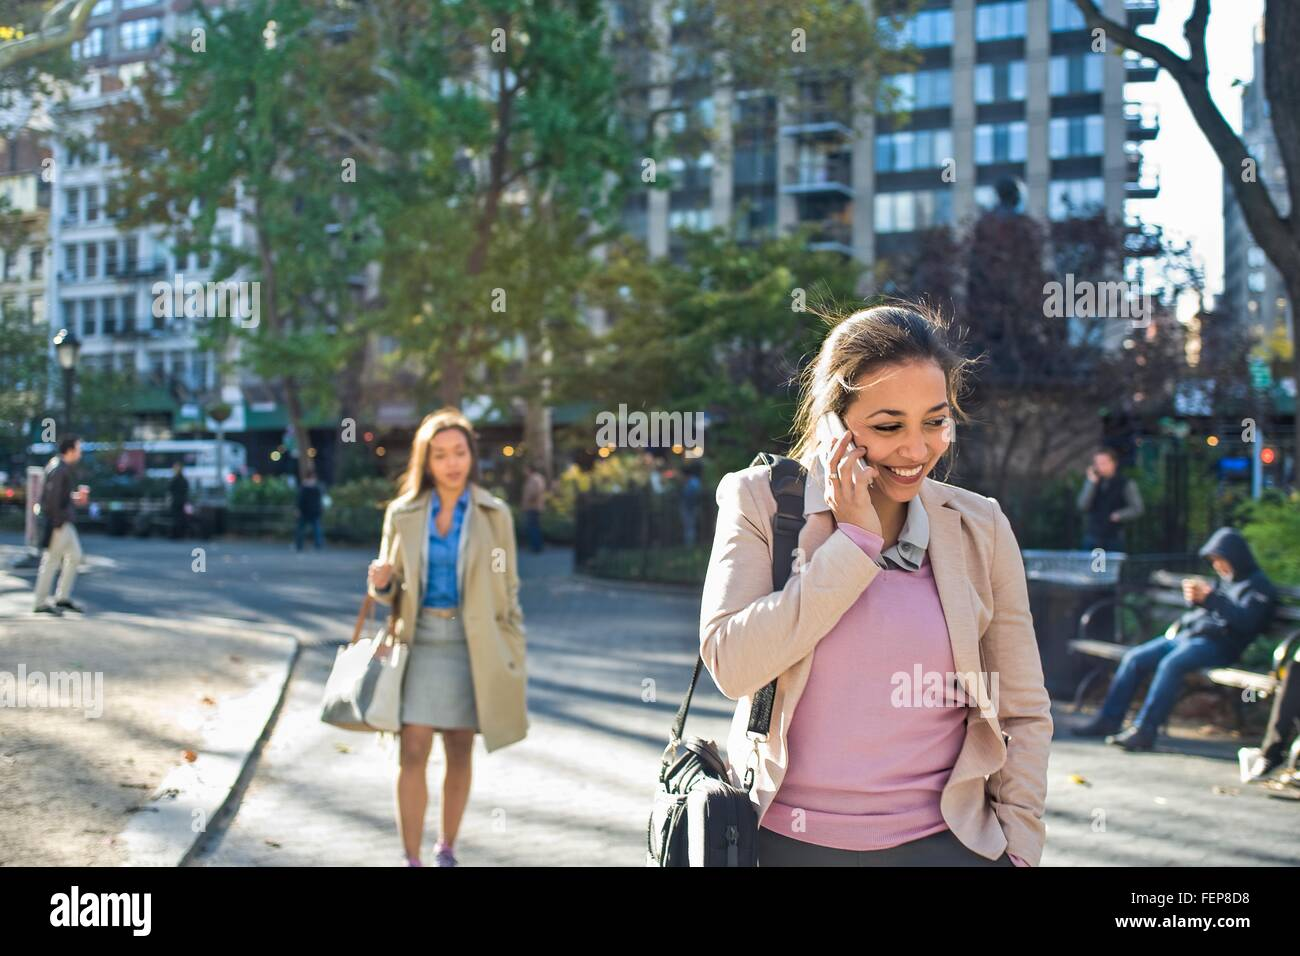 Young woman talking on smartphone whilst walking through city park - Stock Image